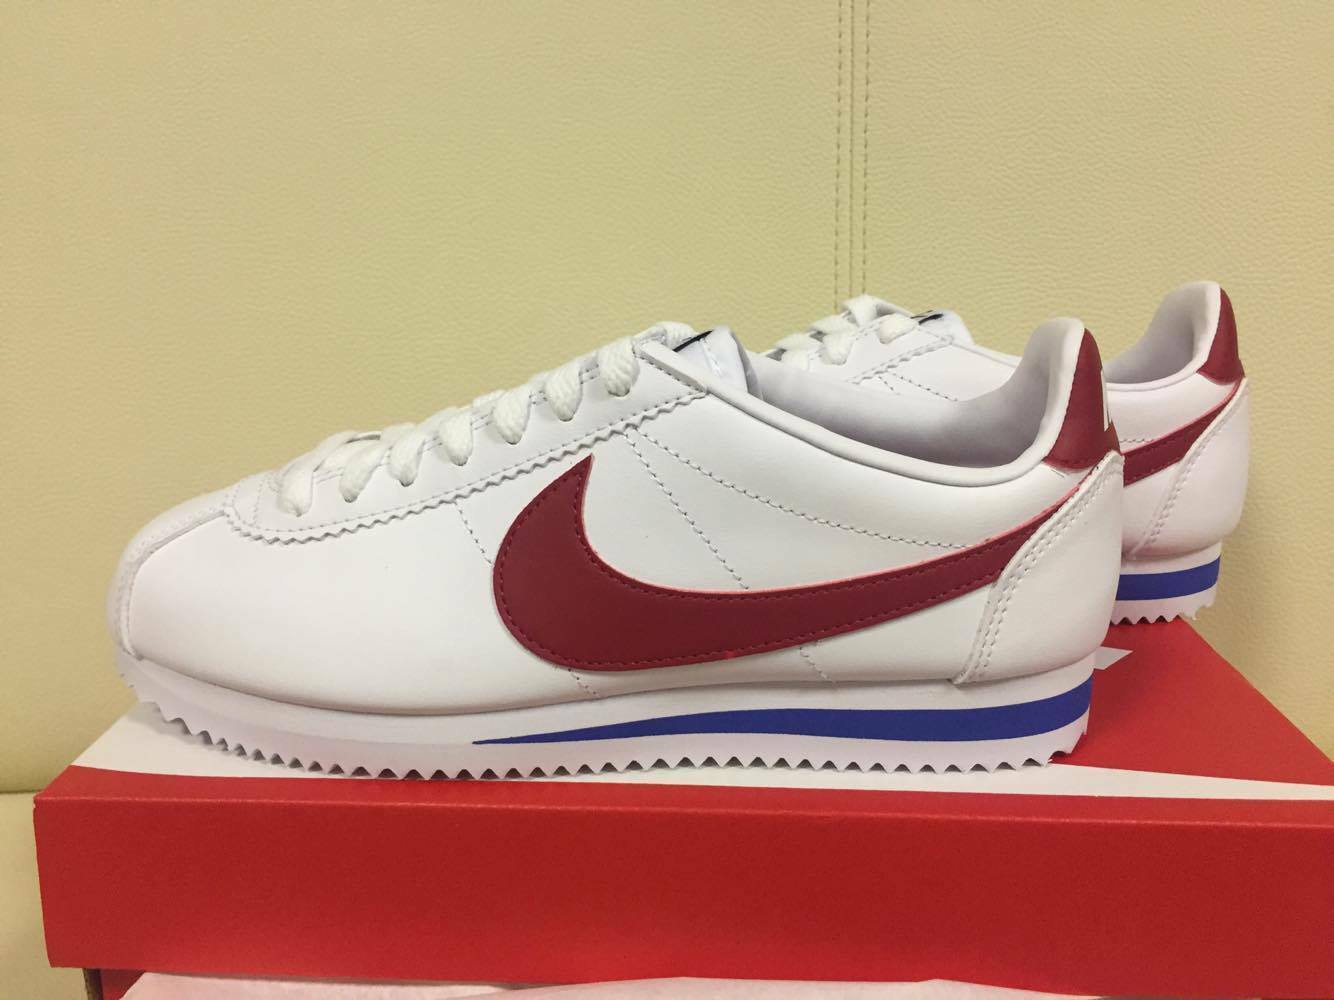 Nike WMNS Classic Cortez Leather 807471-103 Forrest Gump White Varsity Red Shoes